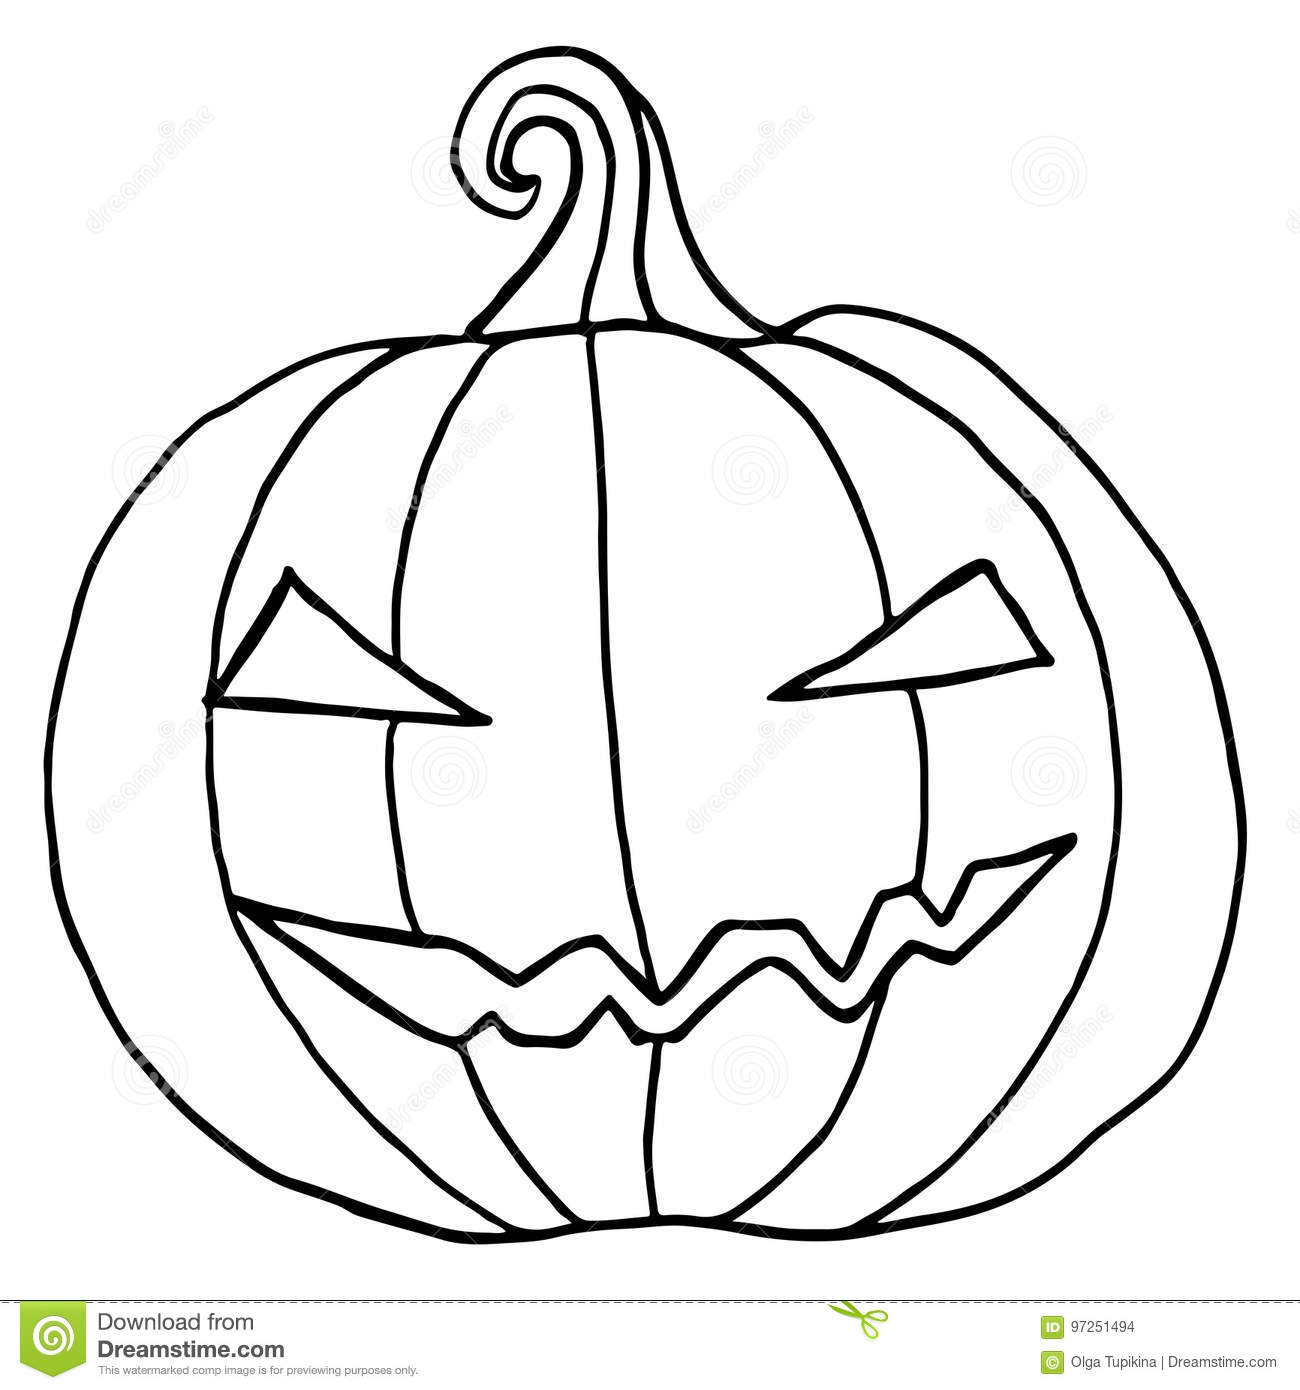 cartoon pumpkin coloring pages - black and white cartoon evil muzzle pumpkin stock